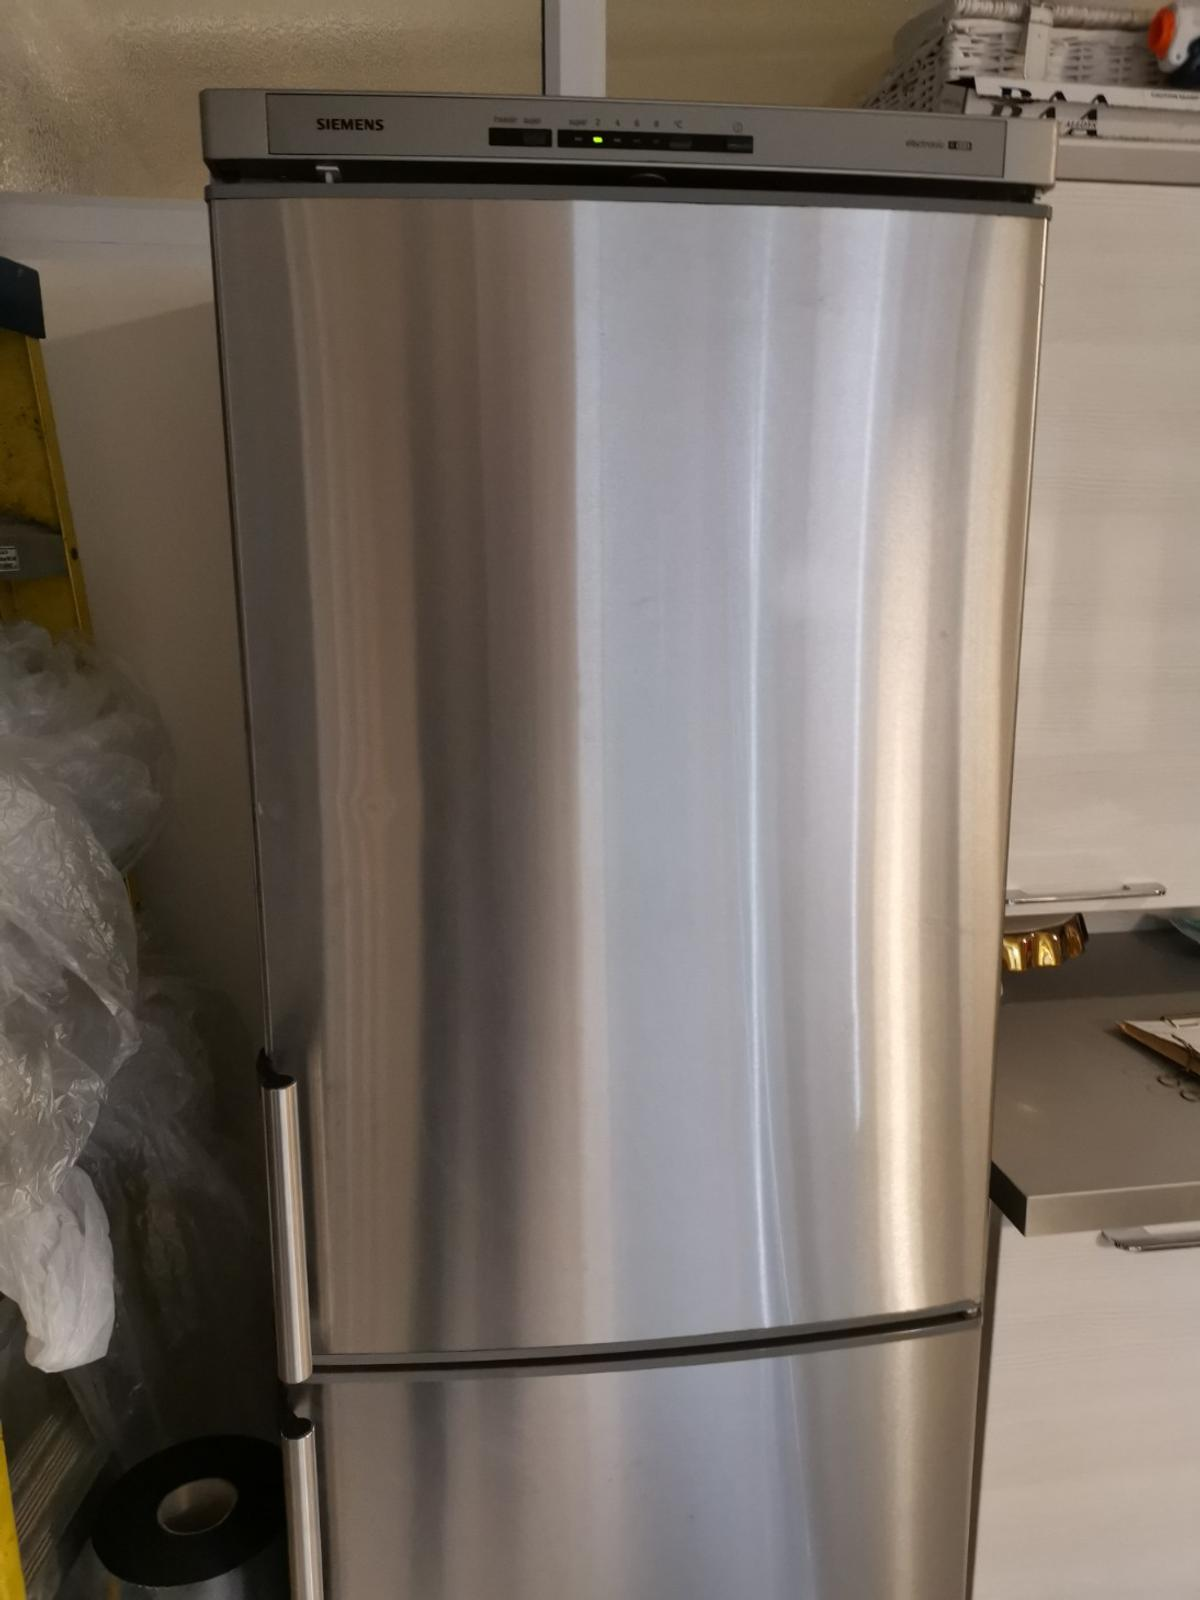 Gorgeous stainless steel fridge freezer. Perfect working order but 2 small dents to front, crack to side of freezer door edging. Plastic freezer drawers both damaged but can we used without. Open to offers as quick sale required.